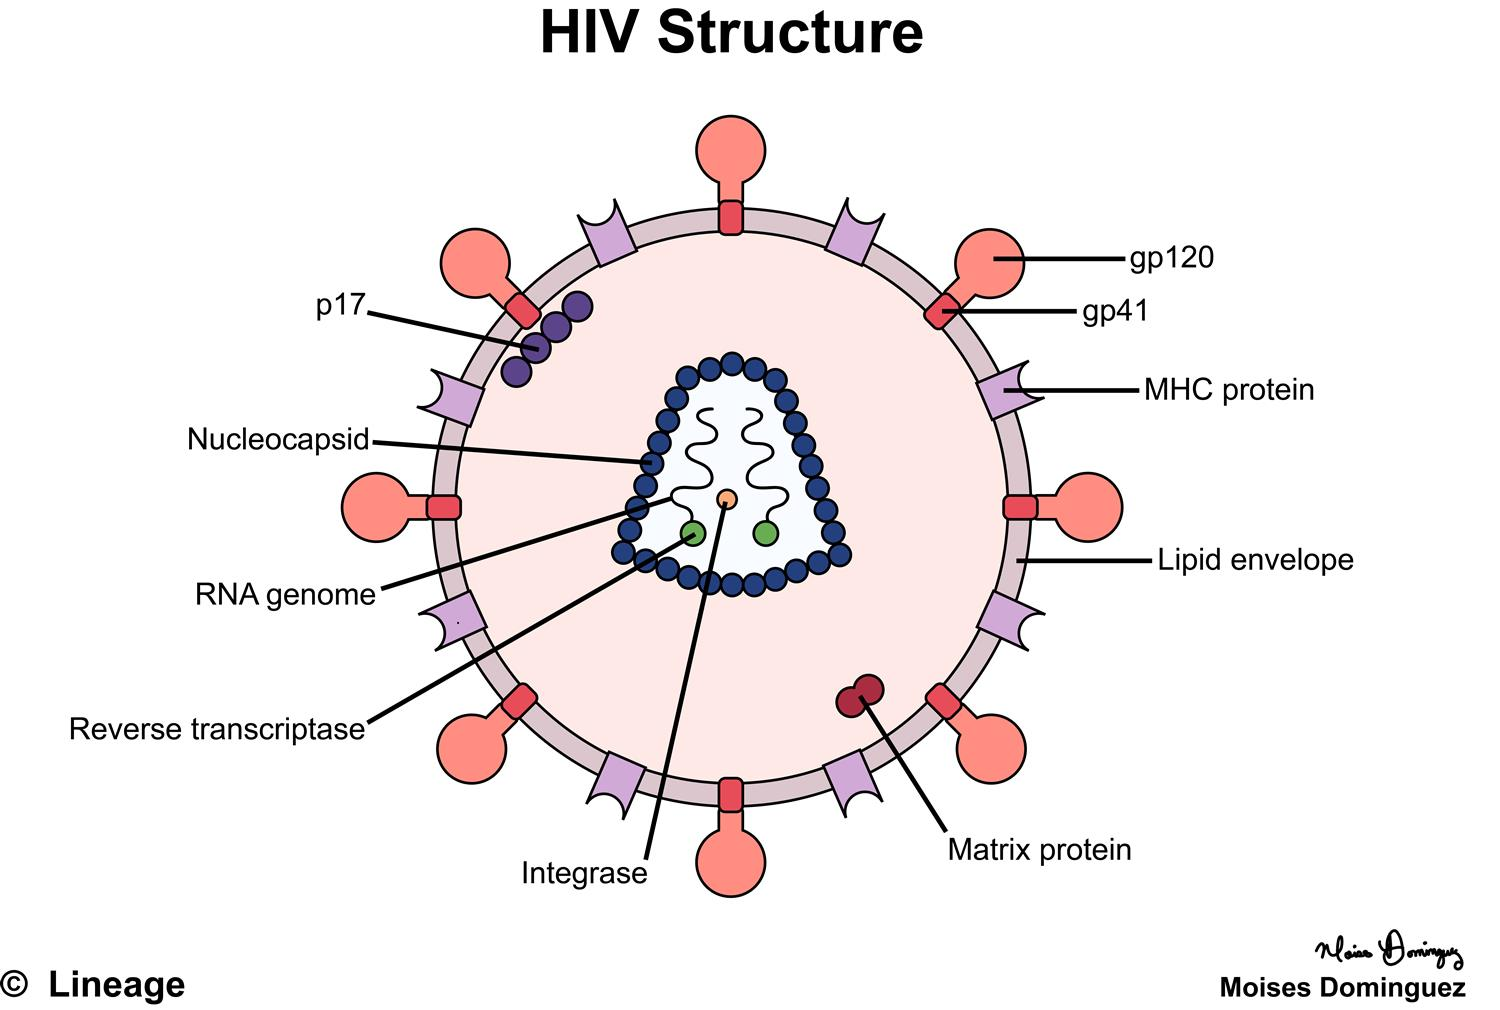 an introduction to the immunology of aids Diagnosis of hiv elisa is the first step in diagnosis  high false-positive rate (high sensitivity and low specificity) rules out the possibility of infection western blot is then used to confirm positive results  high false-negative rate (low sensitivity and high specificity.